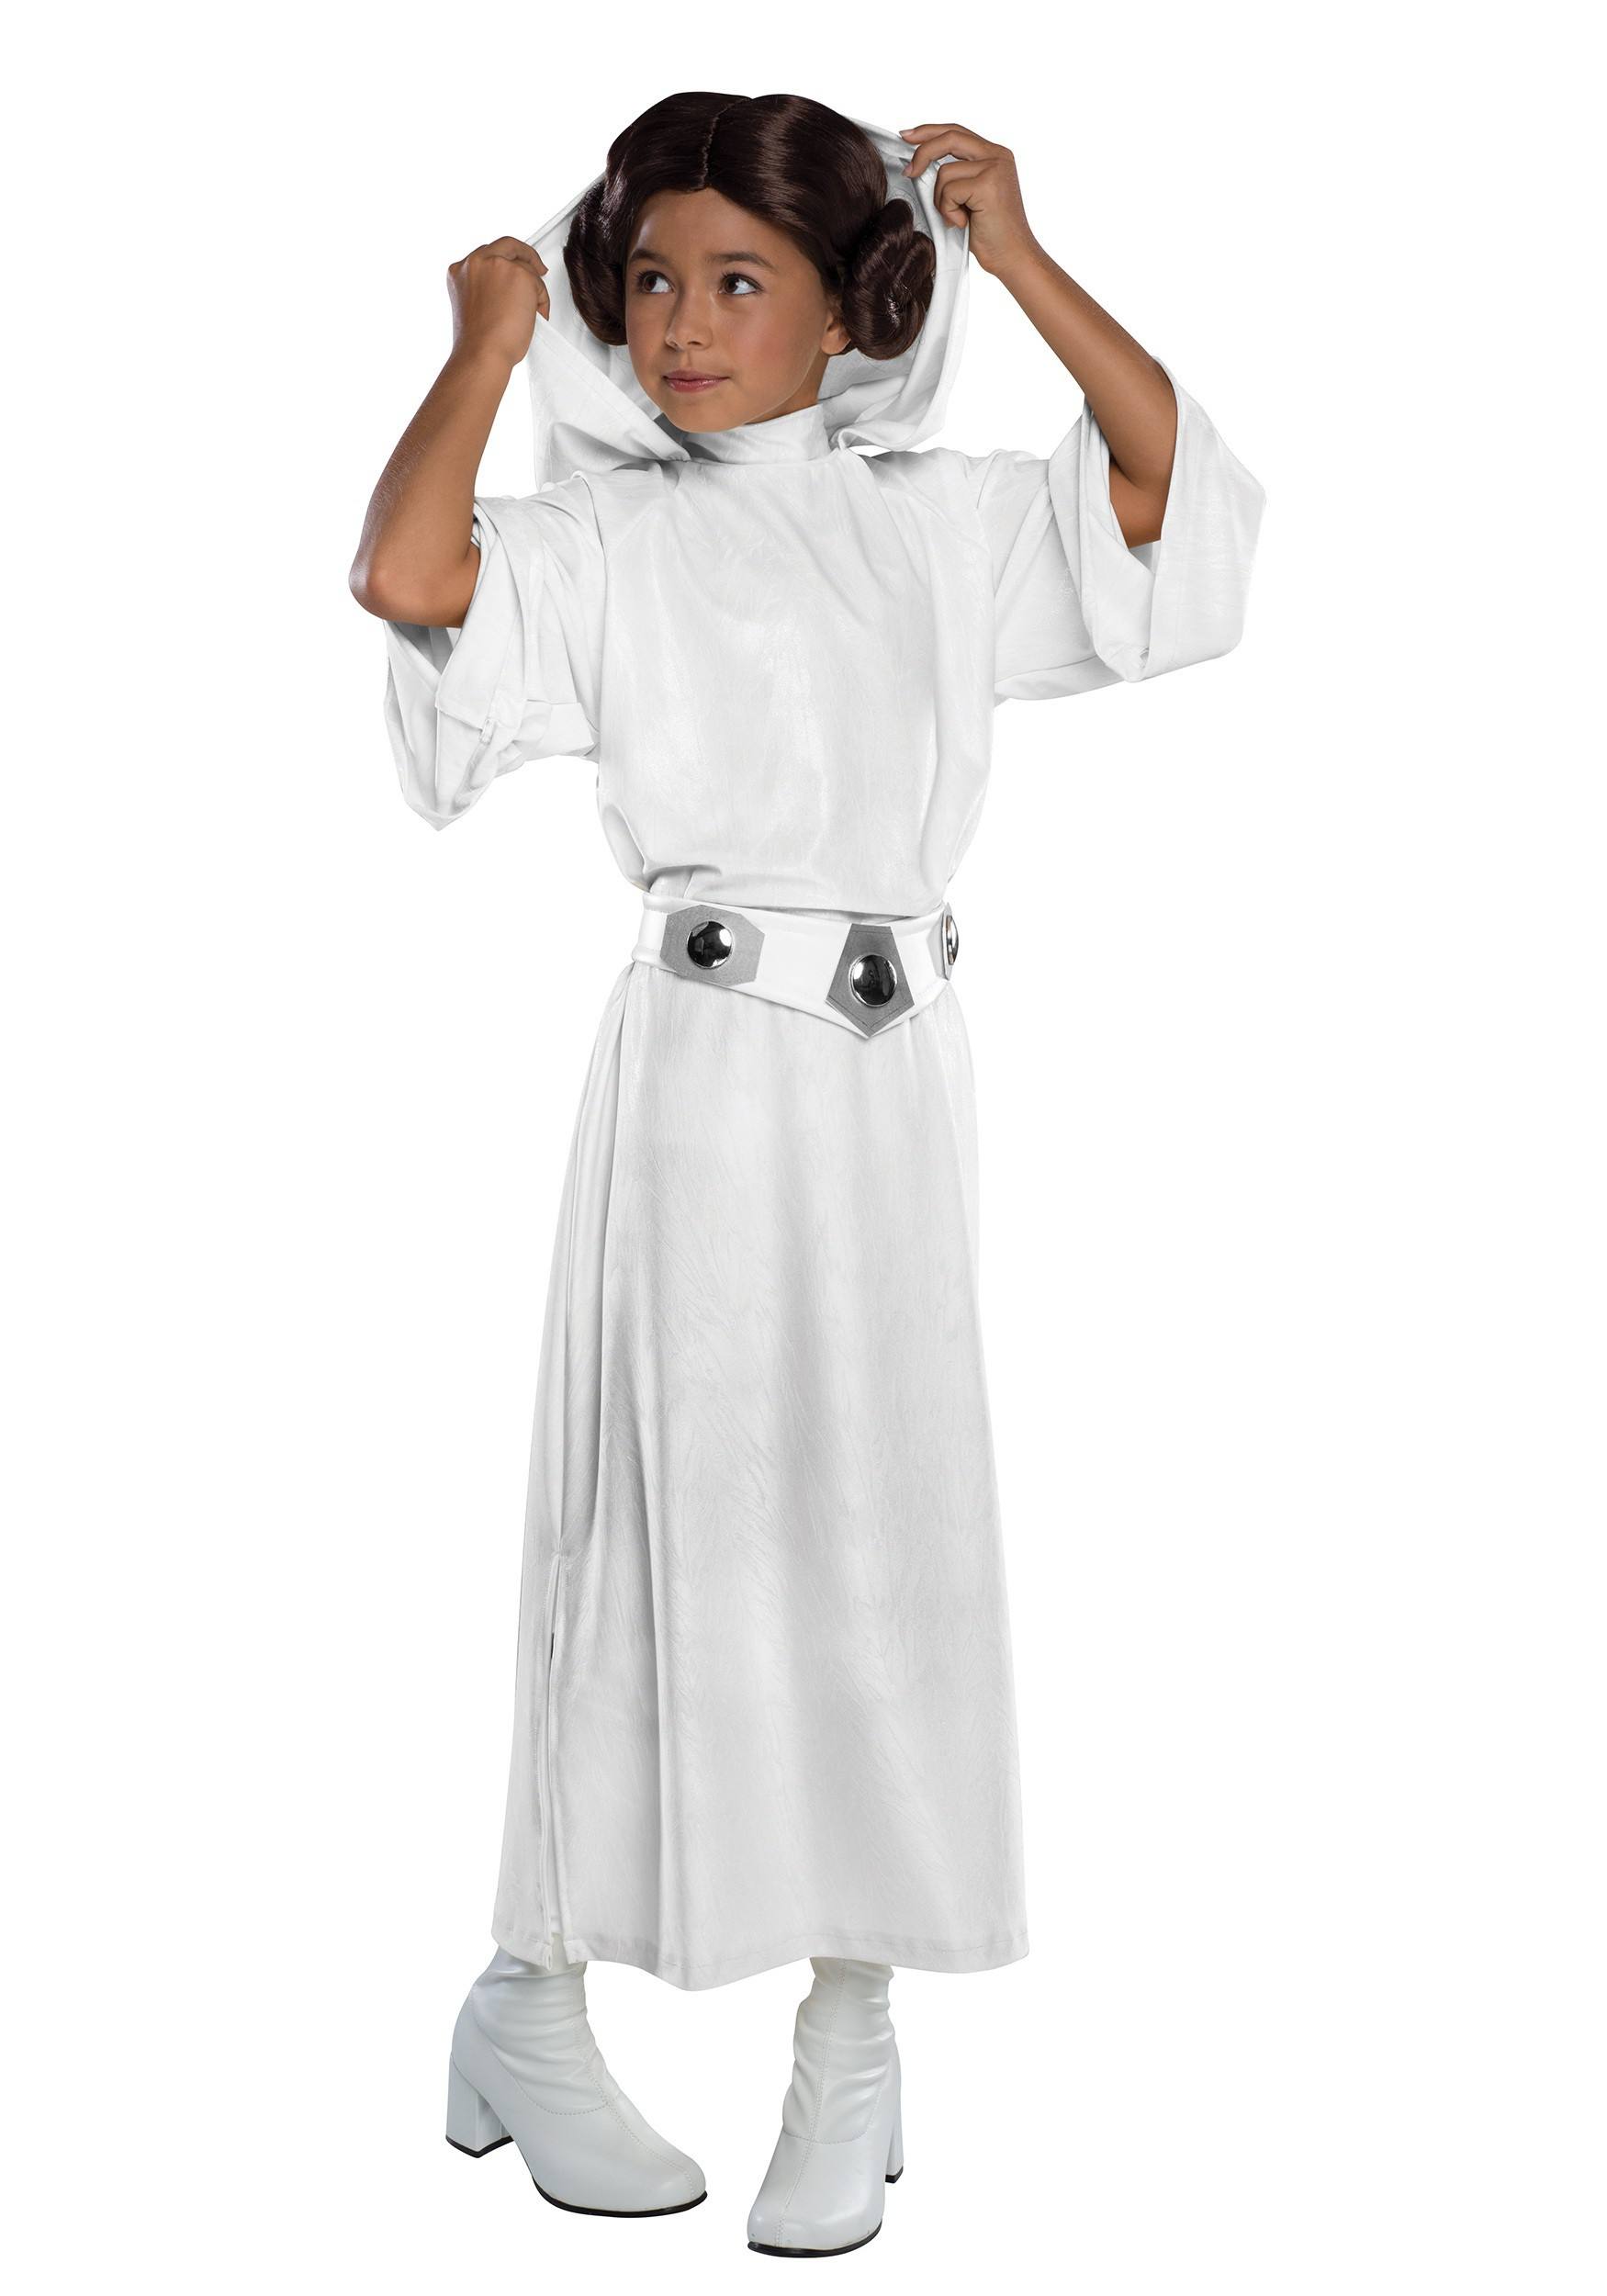 Princess Leia Halloween Costumes For Kids | TimyKids